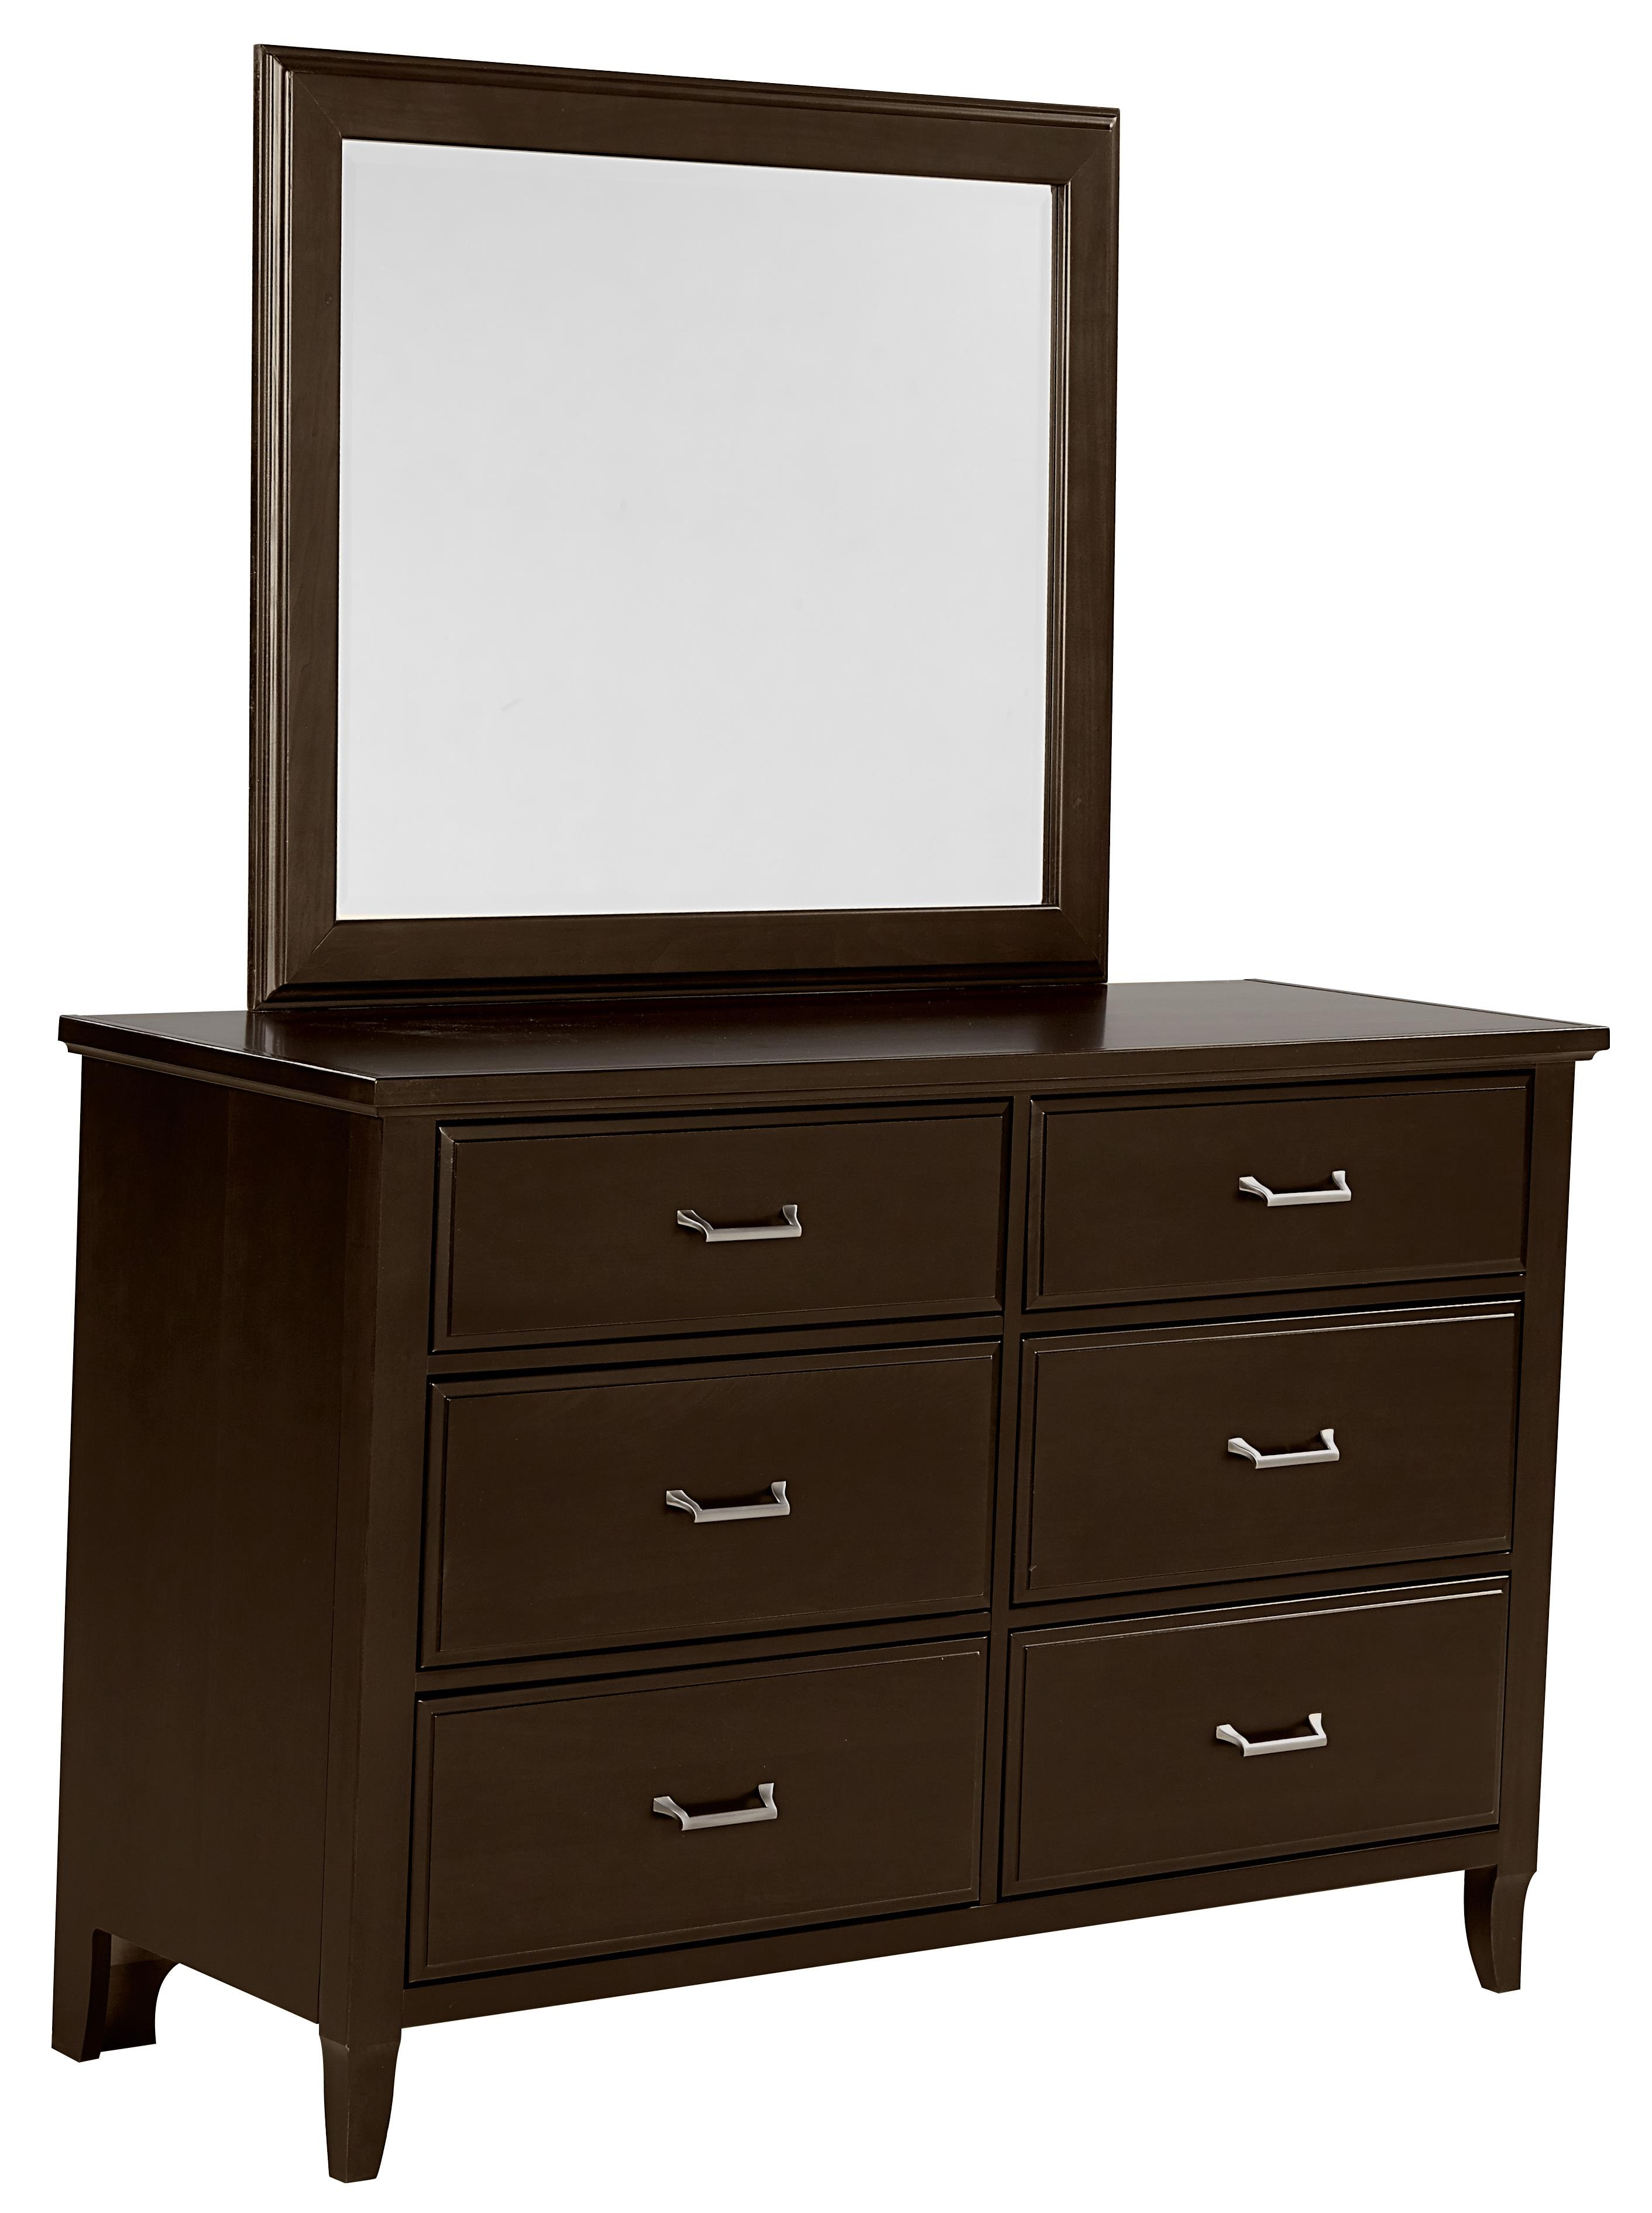 Vaughan Bassett Commentary Dresser - 6 drawers & Youth Landscape Mirror - Item Number: 390-001+442